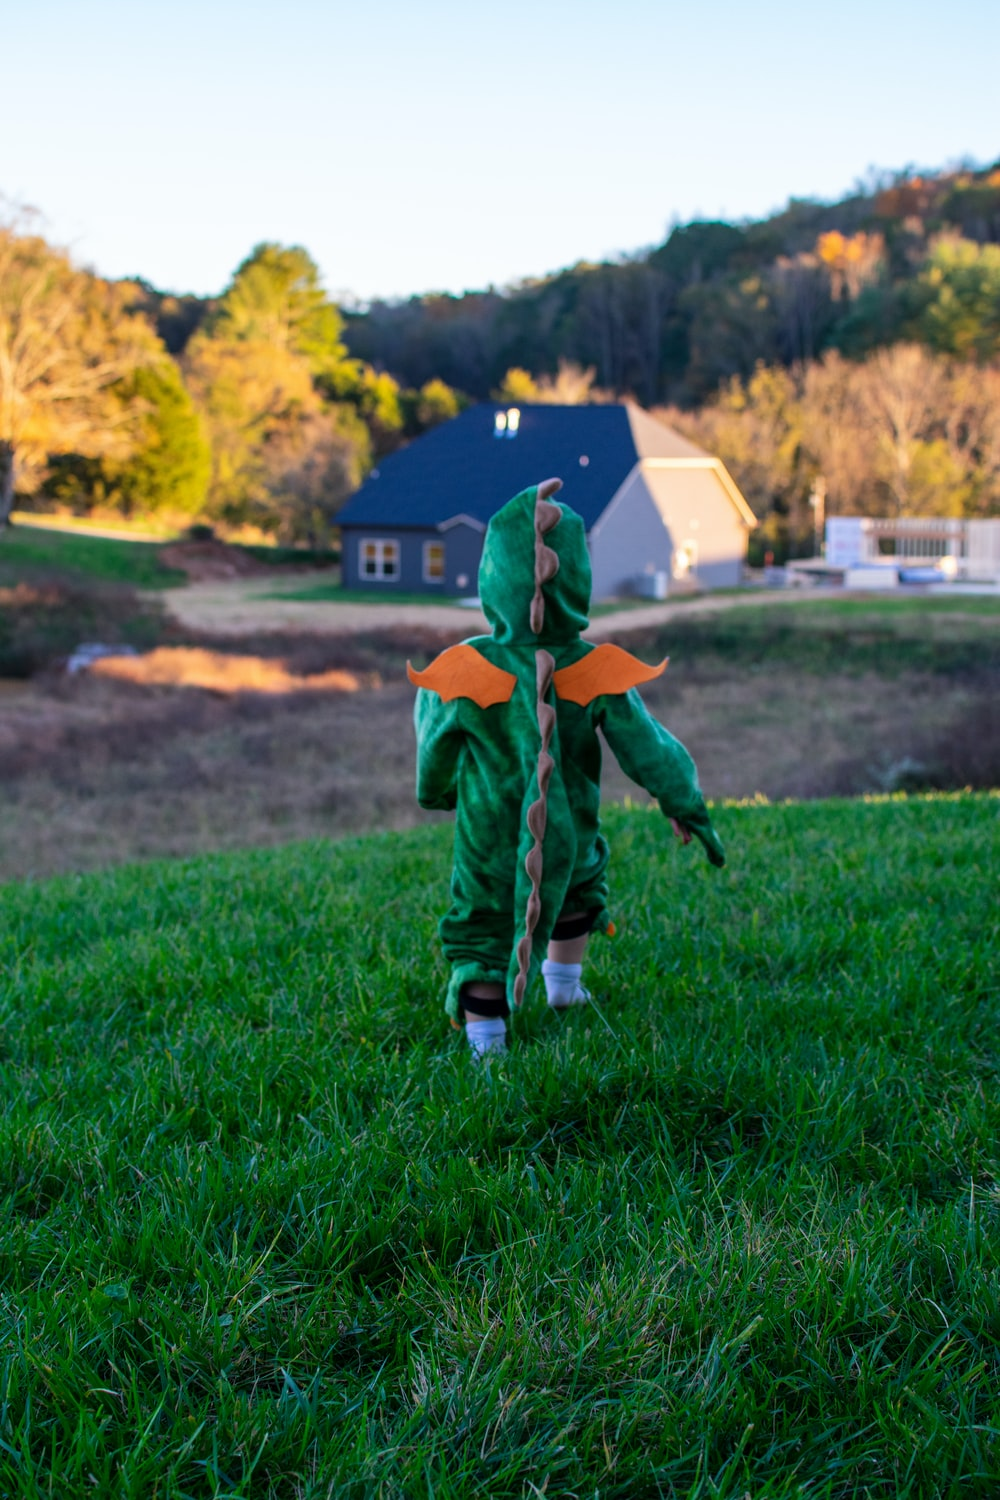 boy in green and orange jacket walking on green grass field during daytime